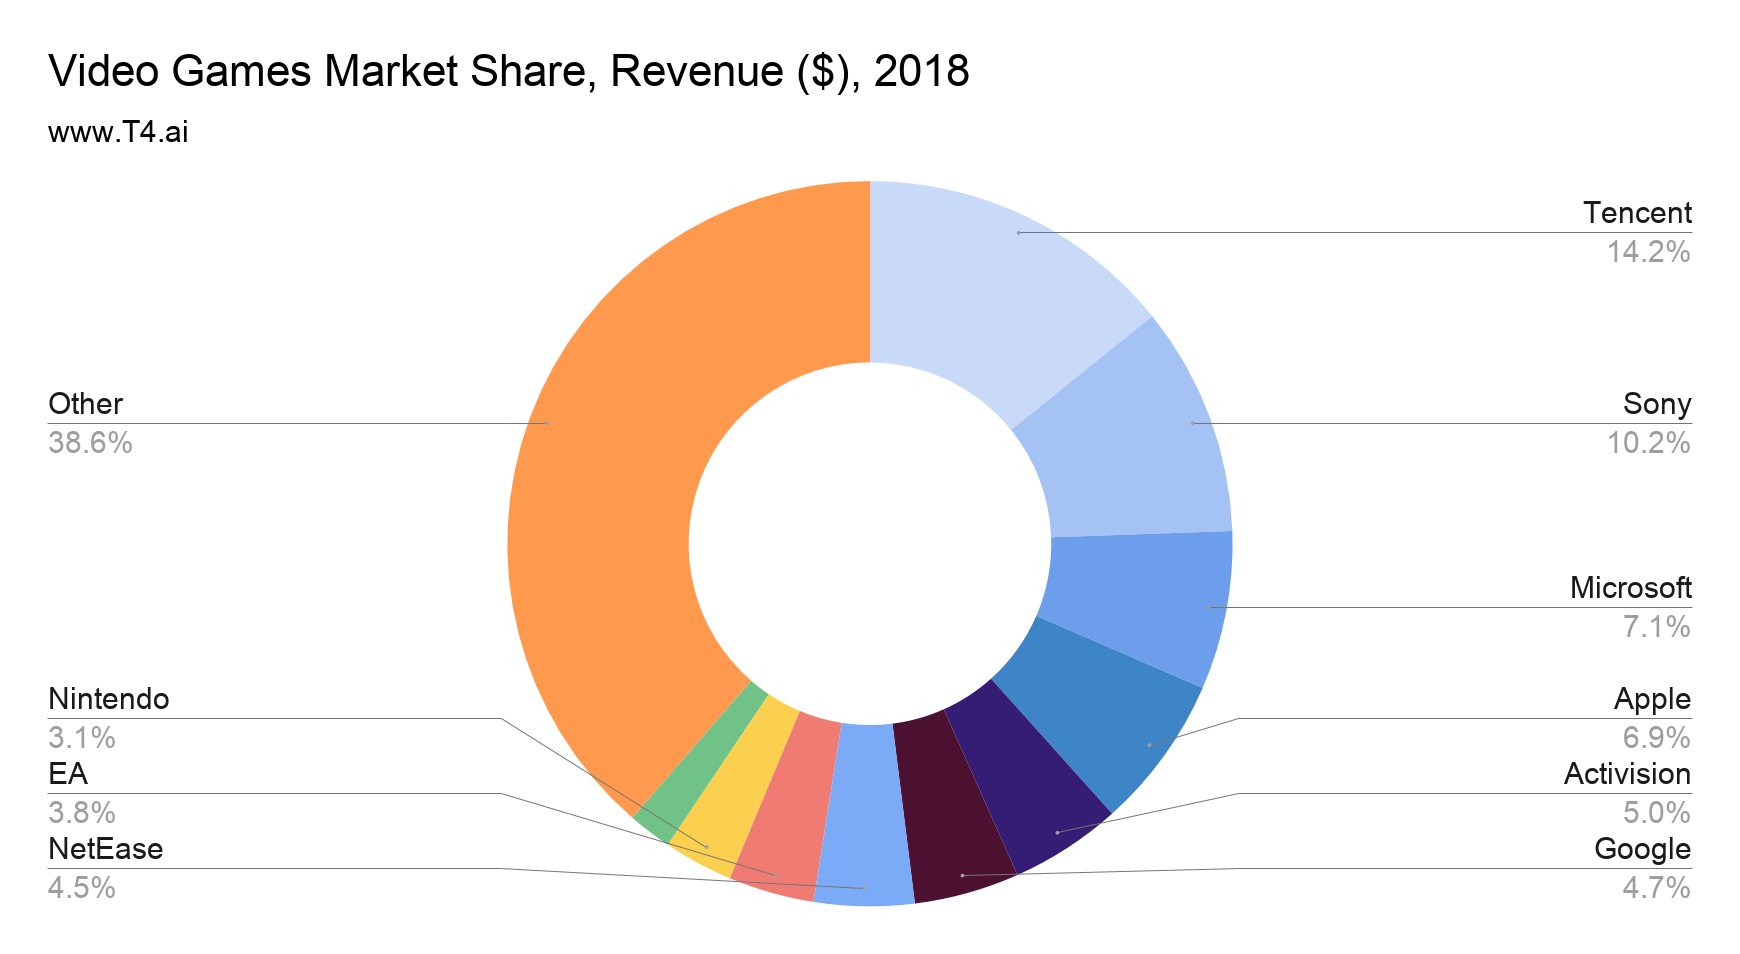 Video Game Market Share